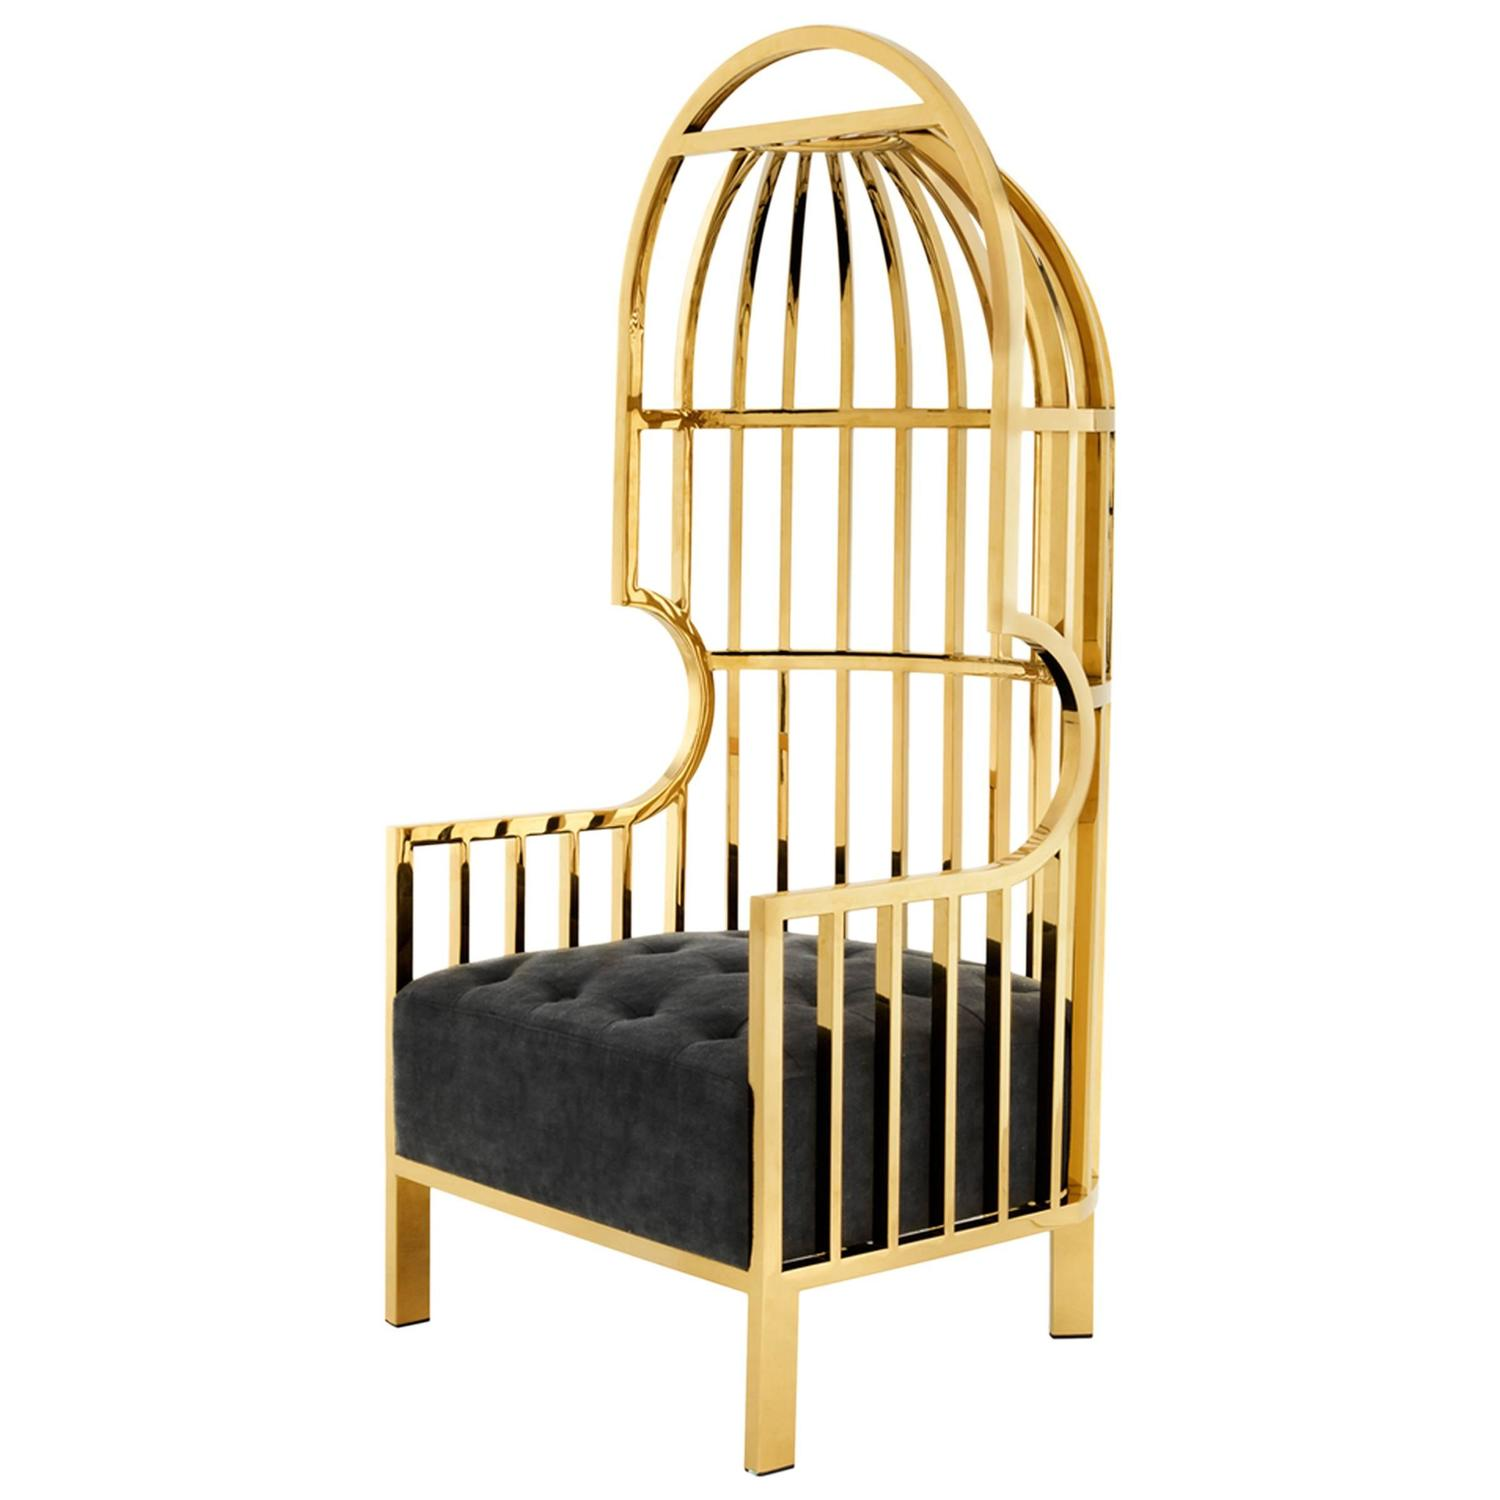 Cage Armchair In Gold Finish And Black Velvet Seat, 2016 For Sale At 1stdibs